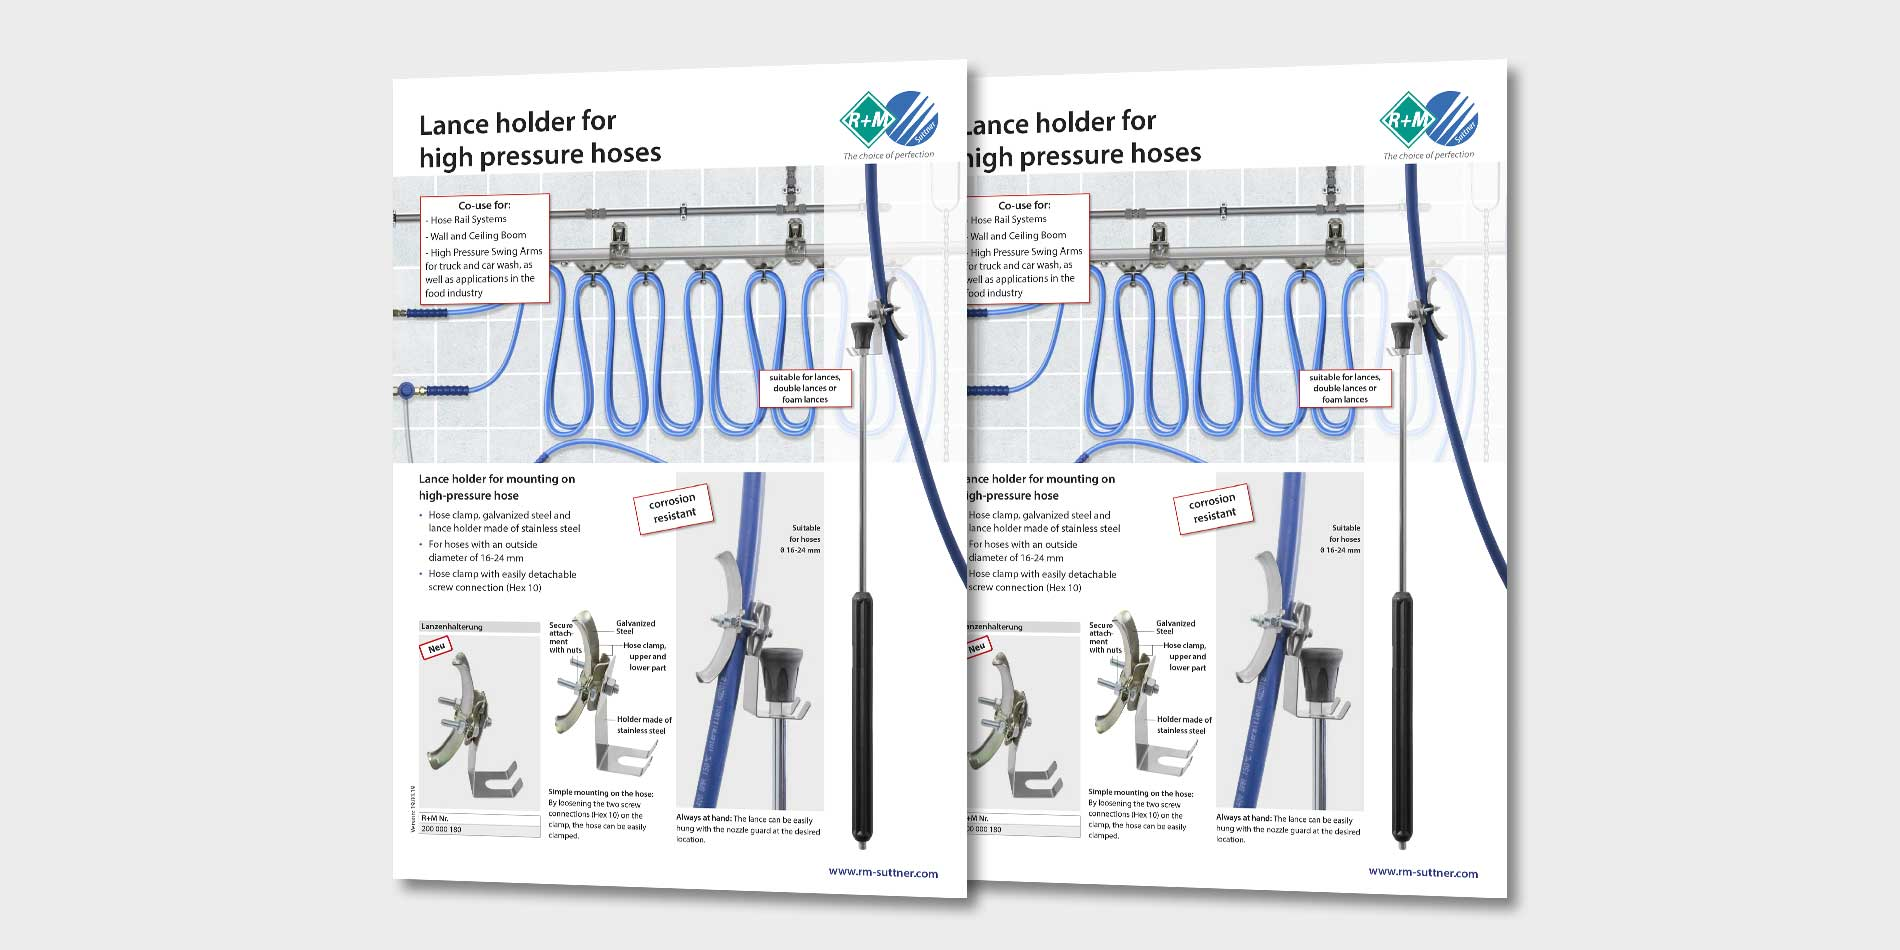 Holder for lances at high pressure hoses